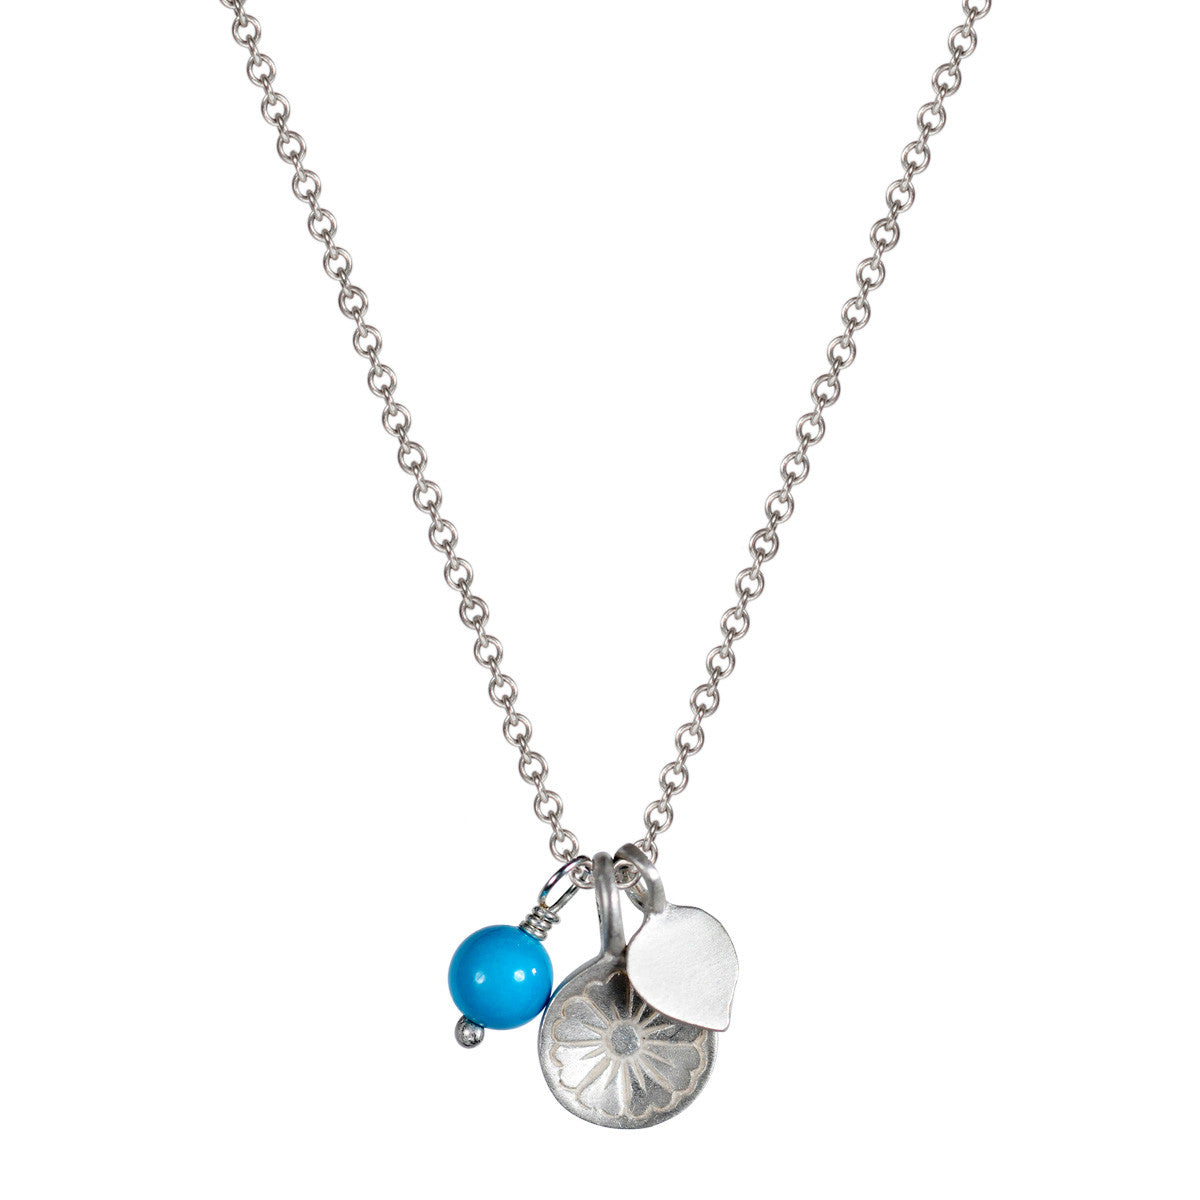 Sterling Silver Flower Trinket with Turquoise Bead Pendant